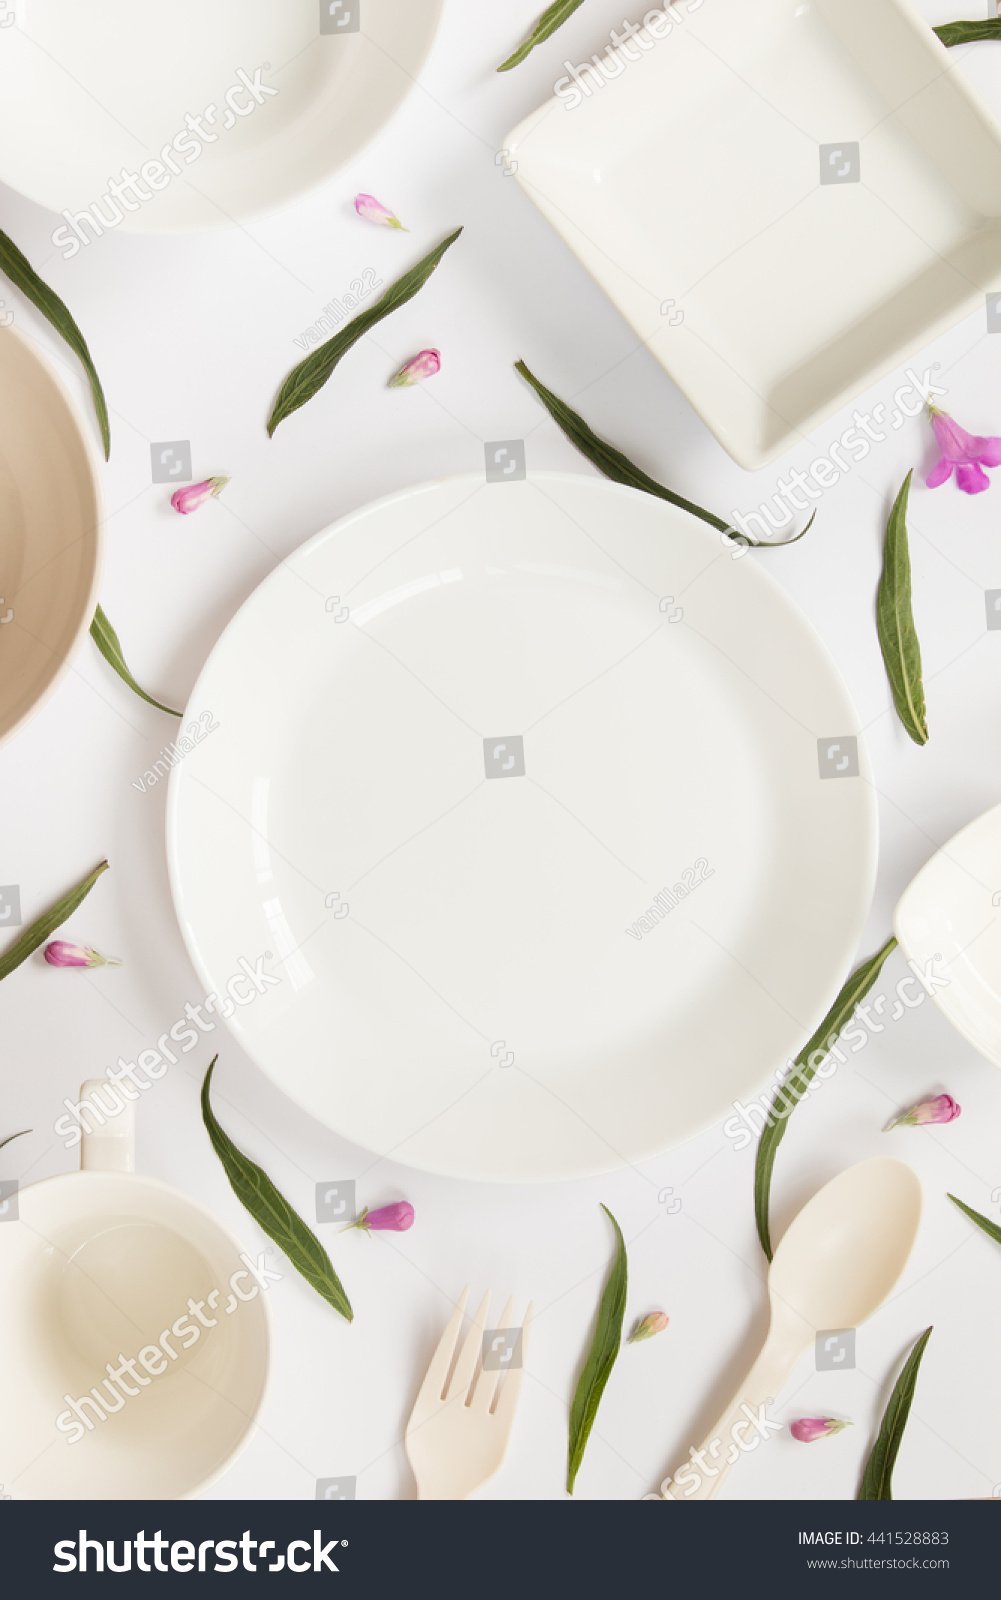 White Kitchenware Leaves Flowers Decorate Isolated Stock Photo ...